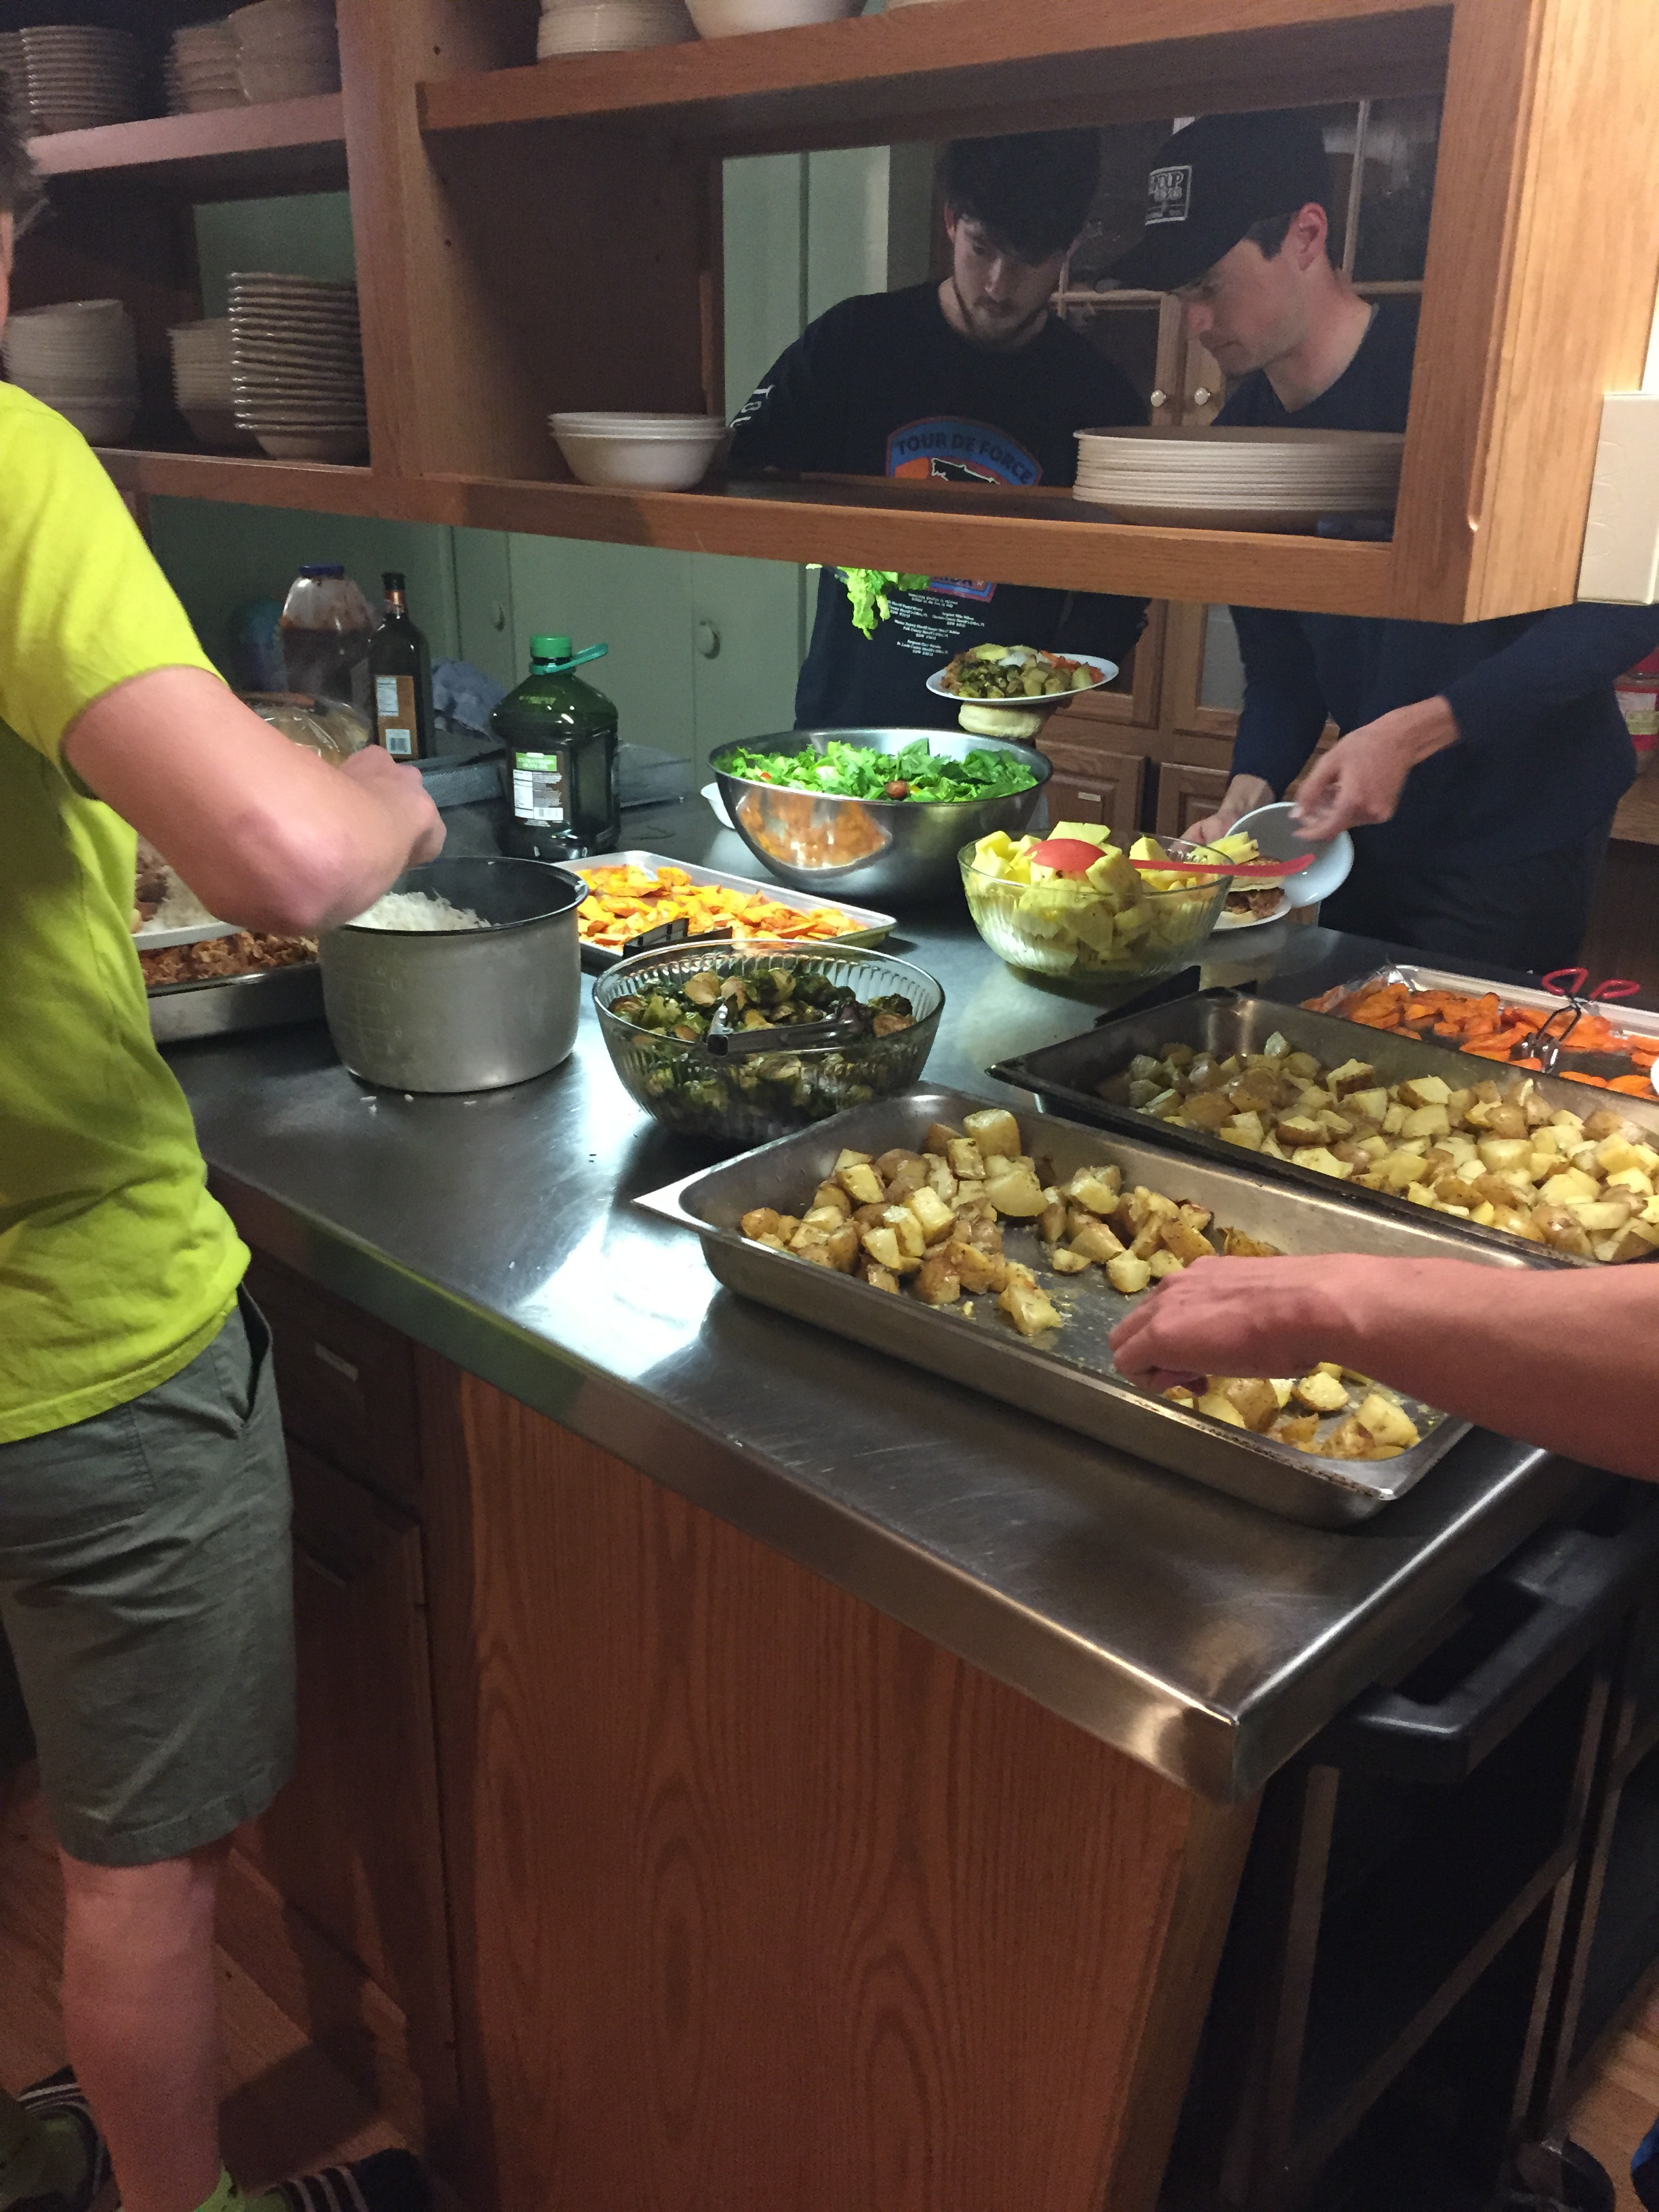 Cooking for 30 is easy when you have access to a commercial kitchen and helpers!